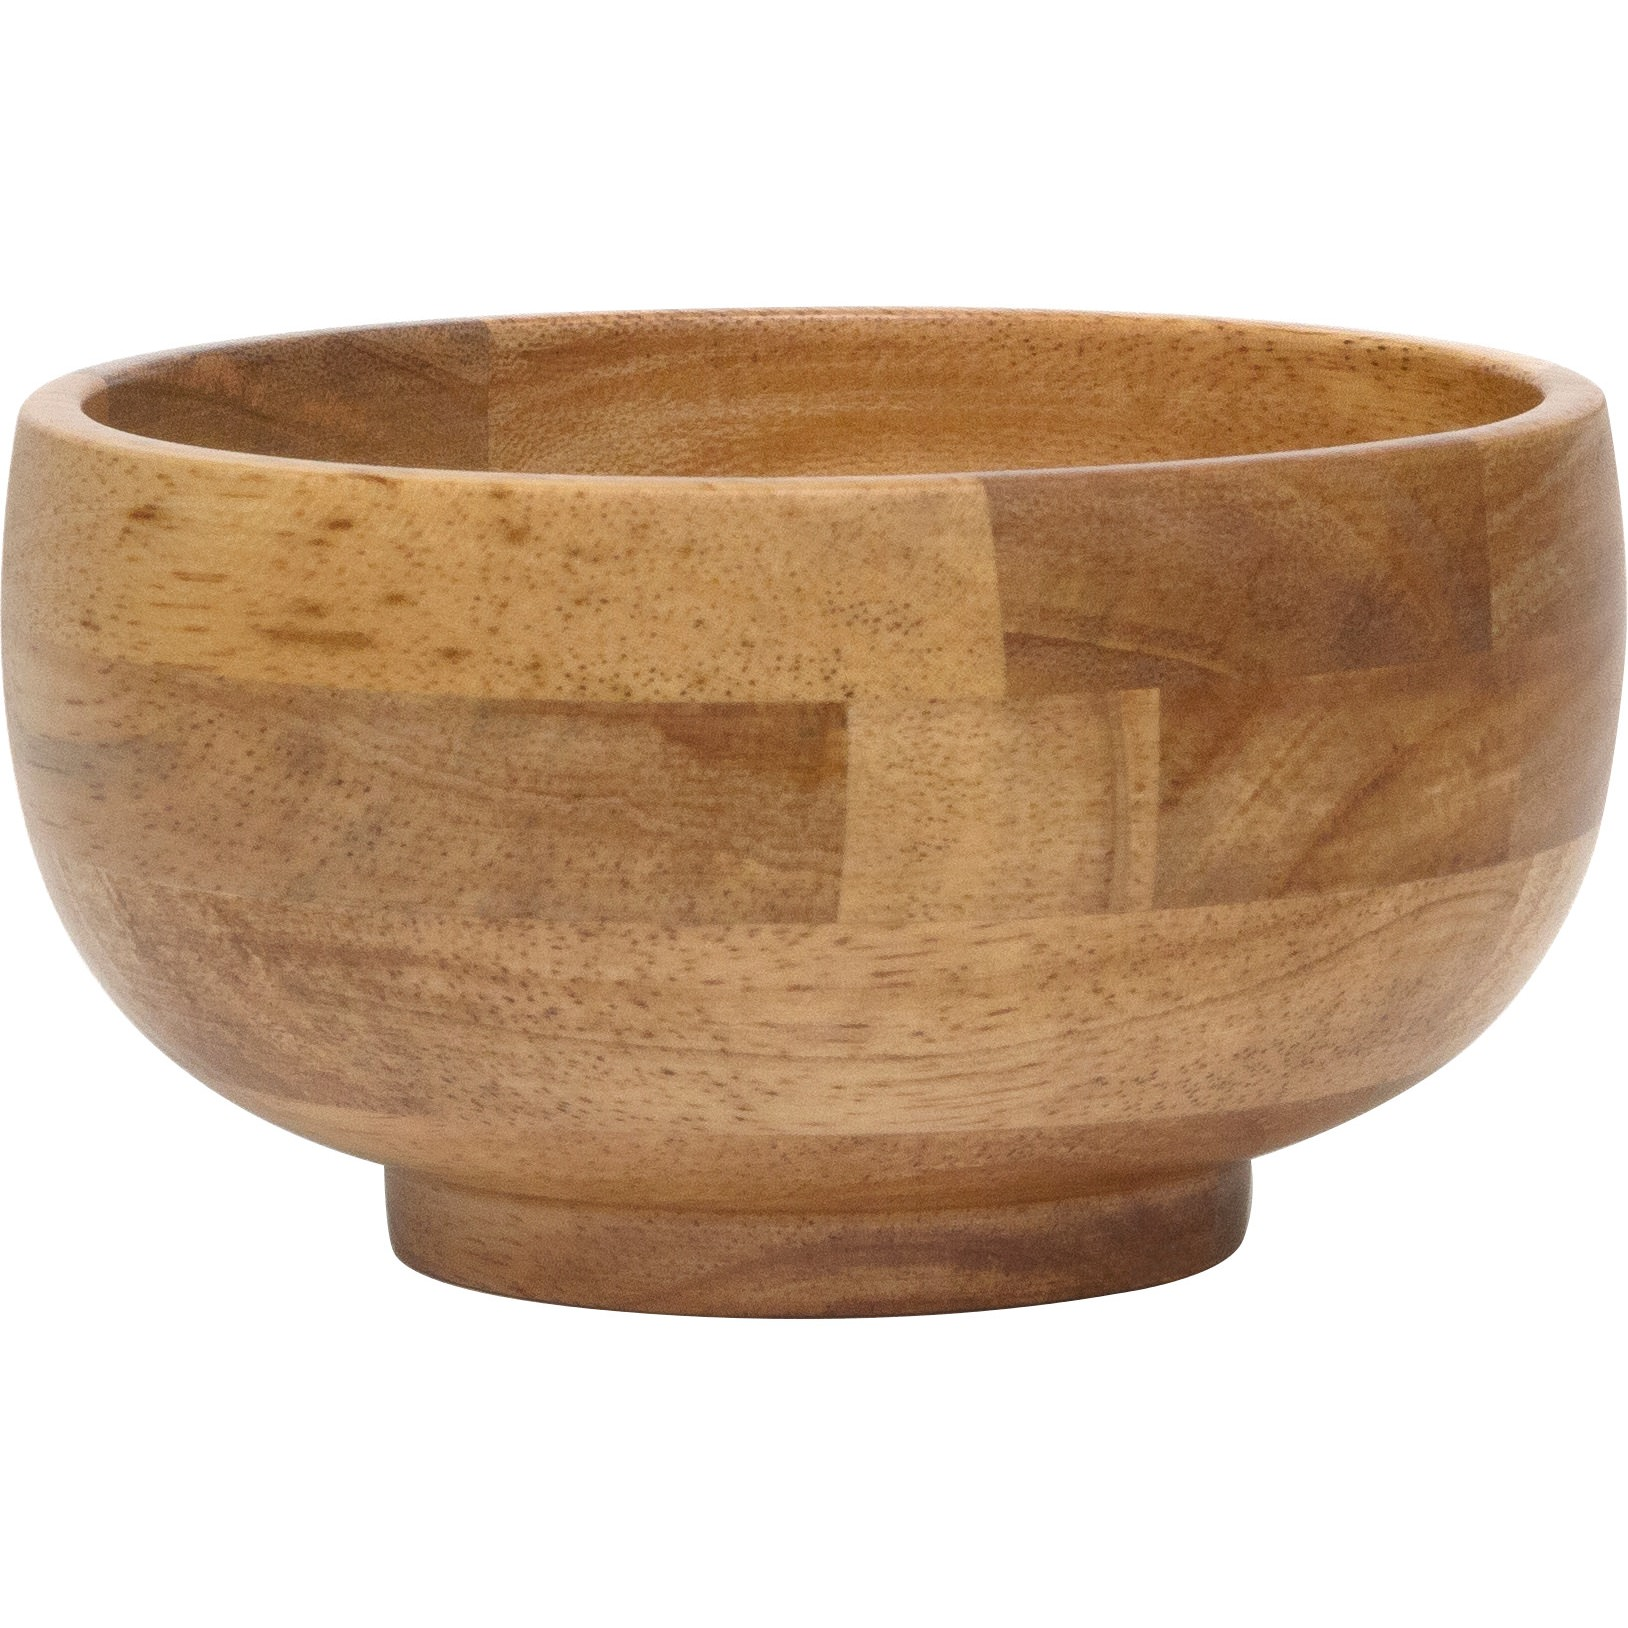 Lipper International Oak Finished Footed Rice Bowls, Set of 4